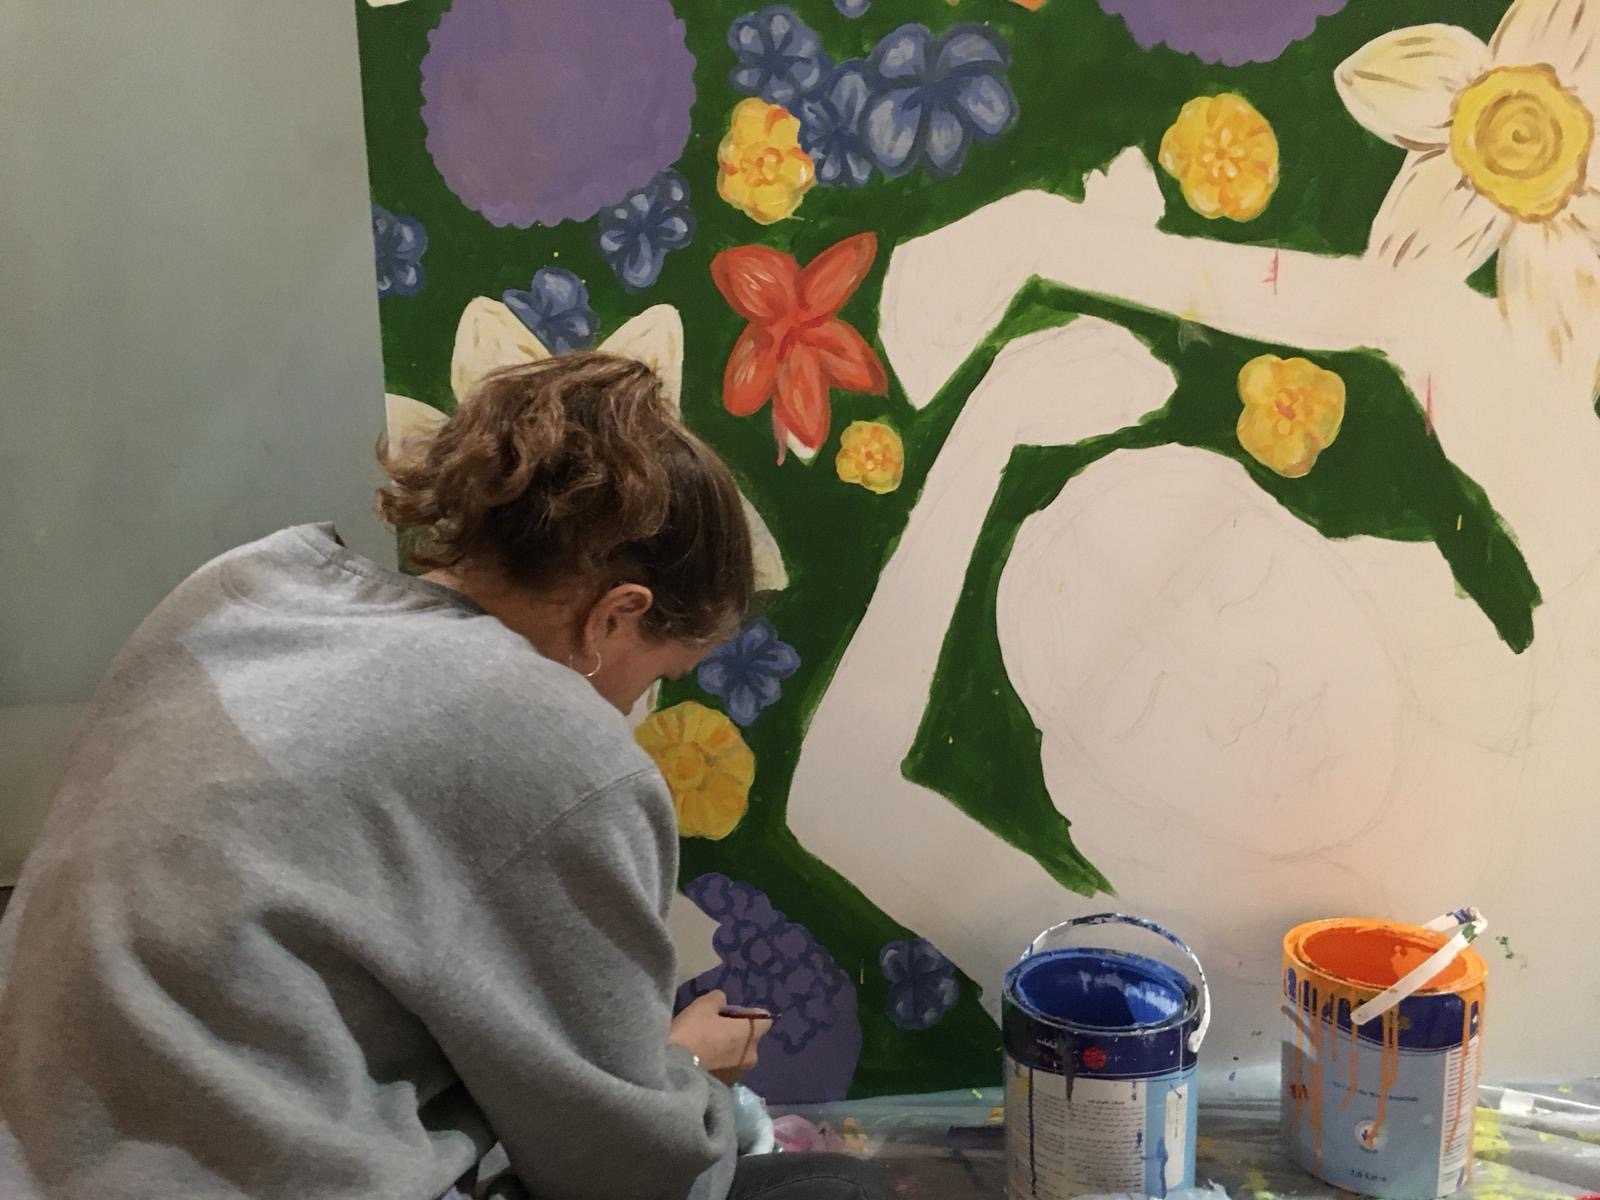 Phoebe sits on the ground, bent over a section of a mural she created at the mall. It depicts a woman laying in a field of flowers, her arms stretched above her head.